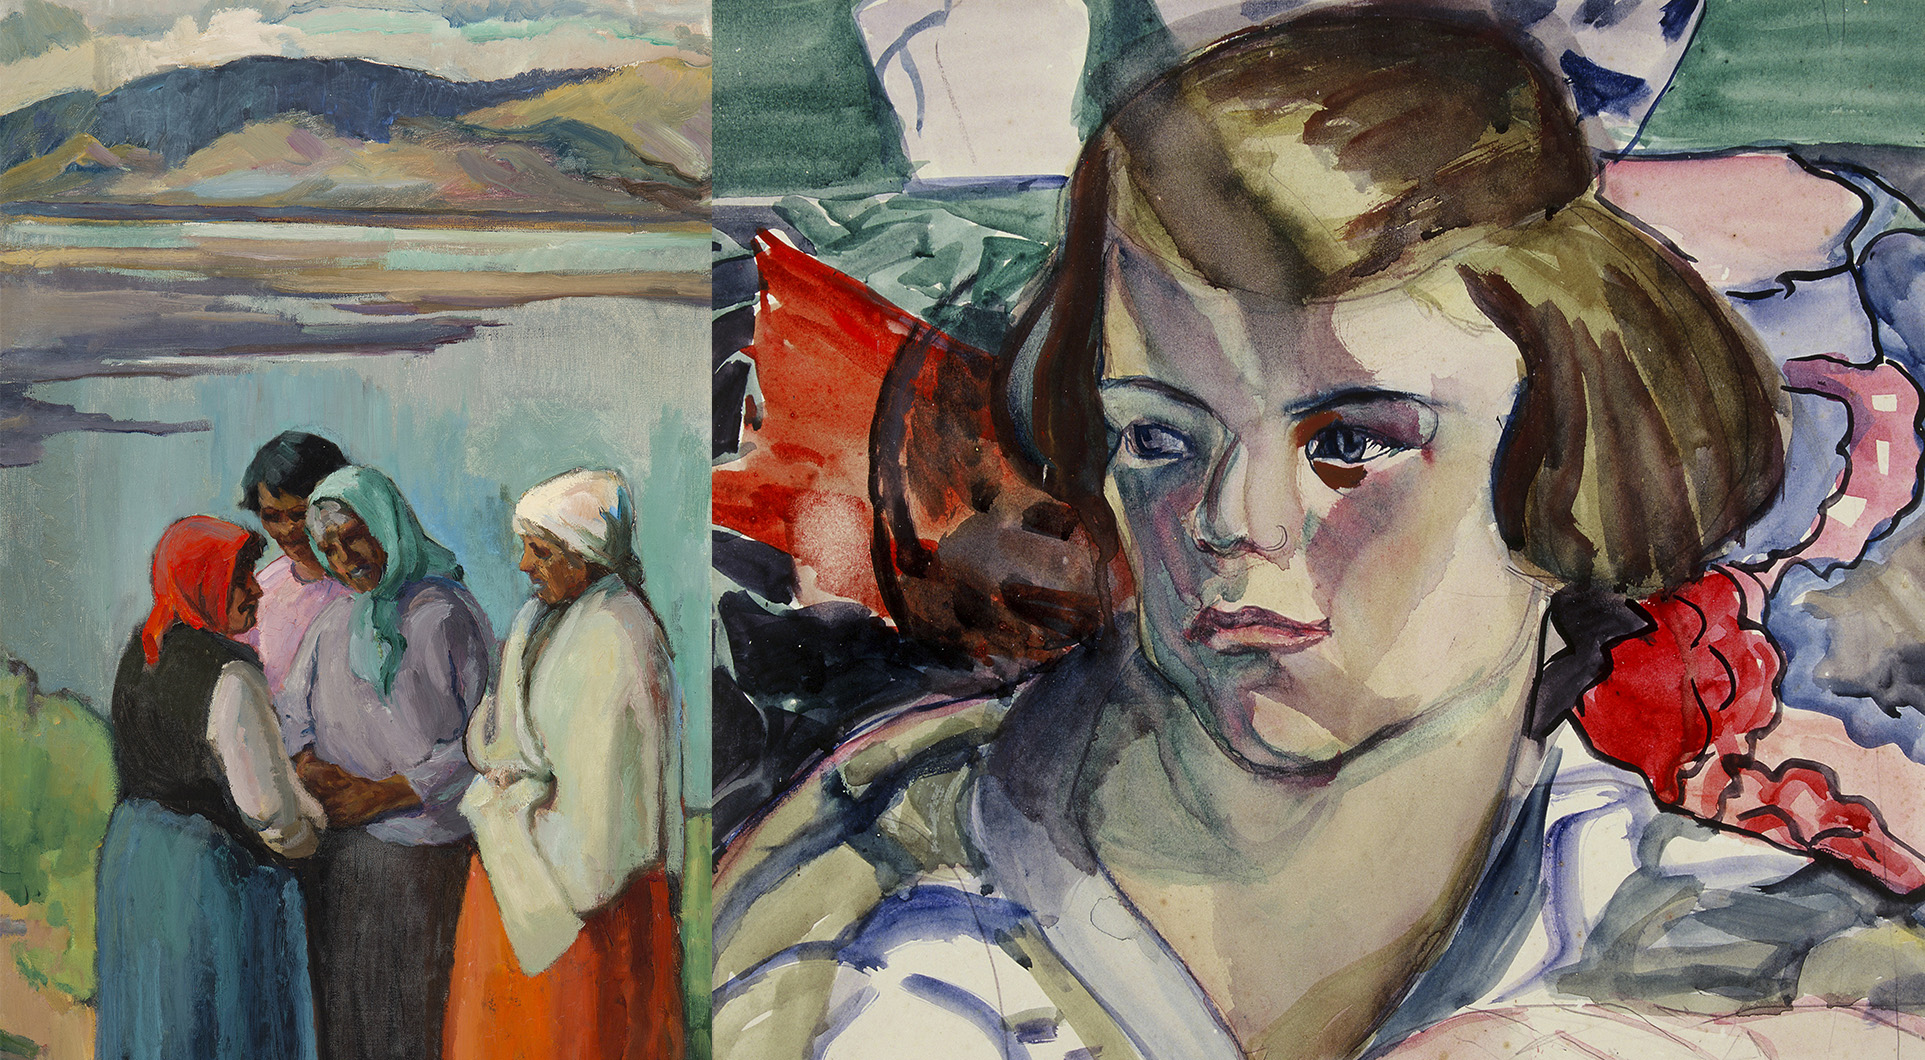 Edith Collier: Ahead of her time